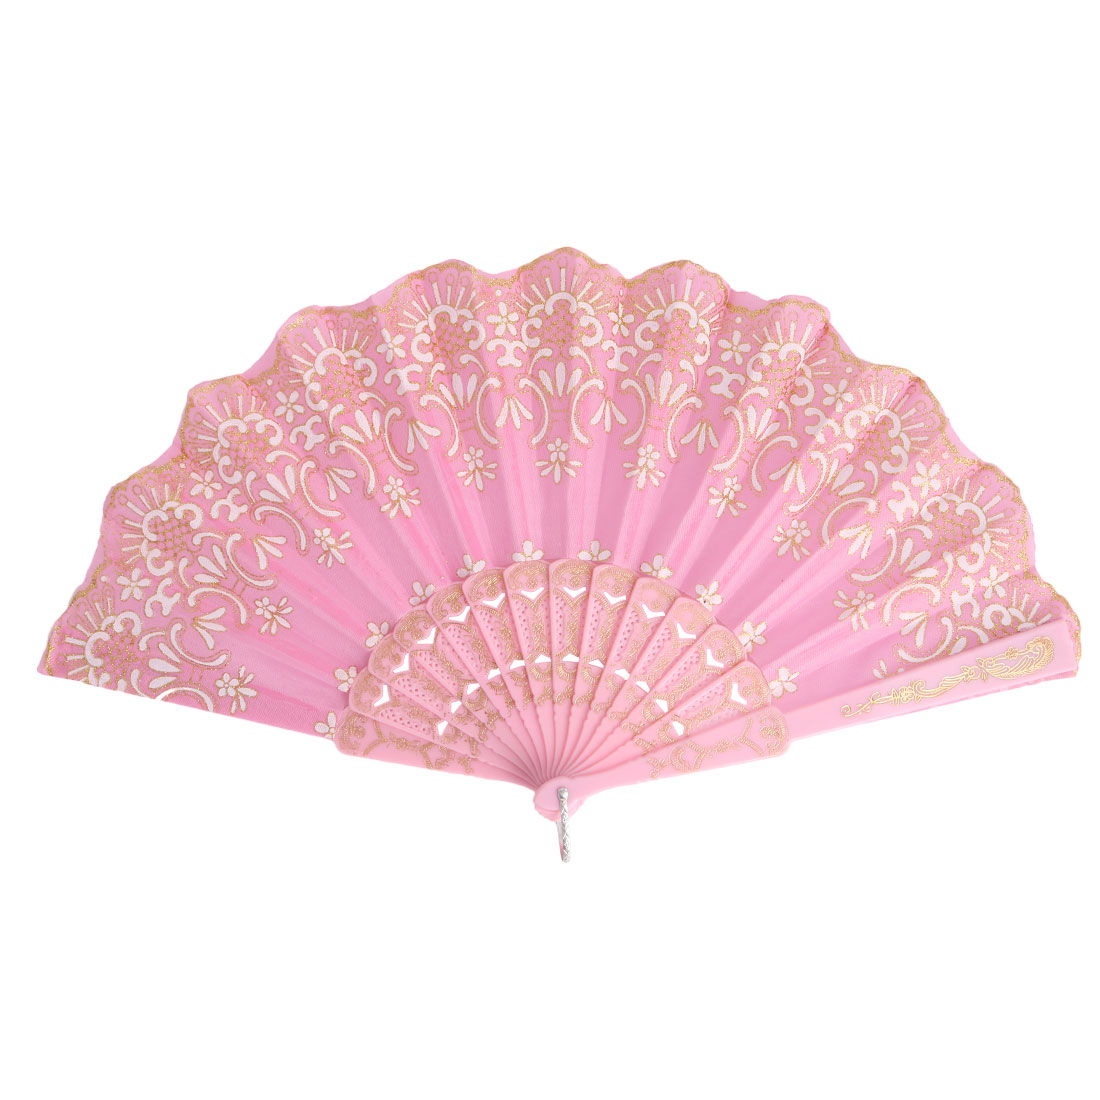 Lady Plastic Frame Floral Pattern Elegant Hand-crafted Folding Hand Fan